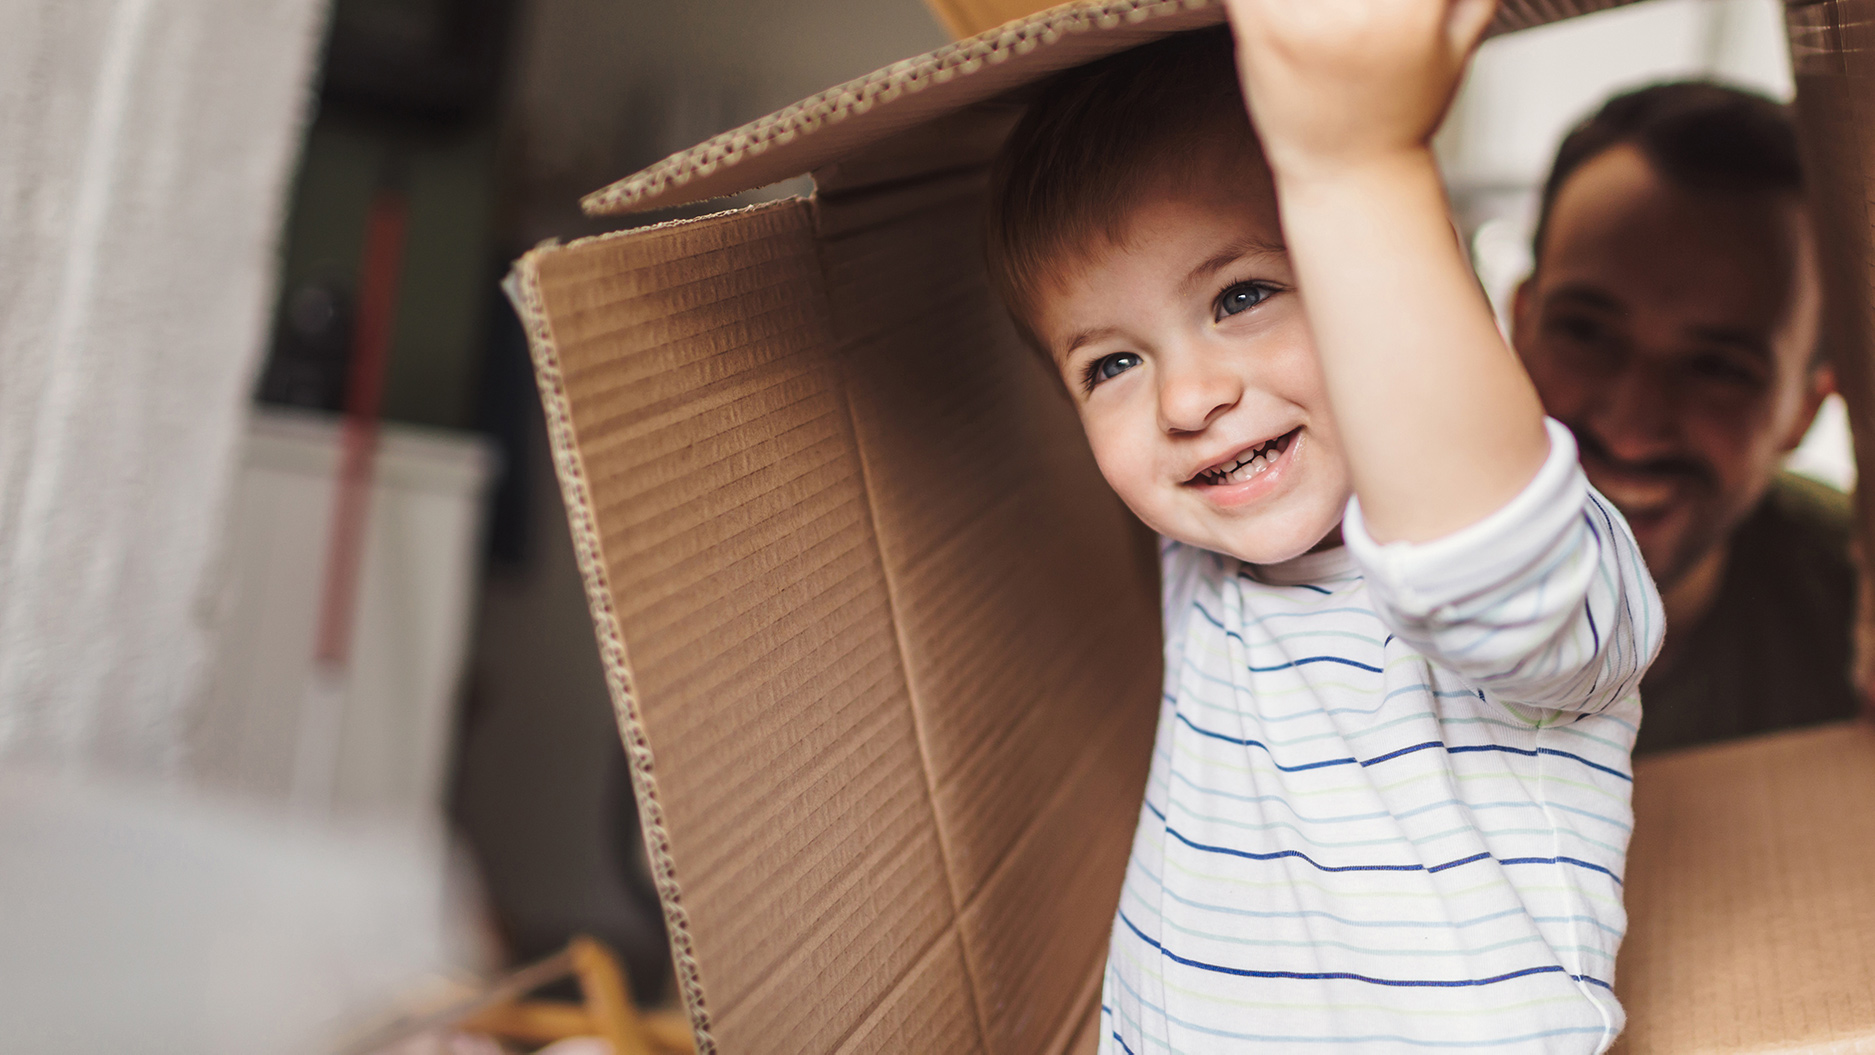 Father and son engage in imaginative play with a cardboard box.